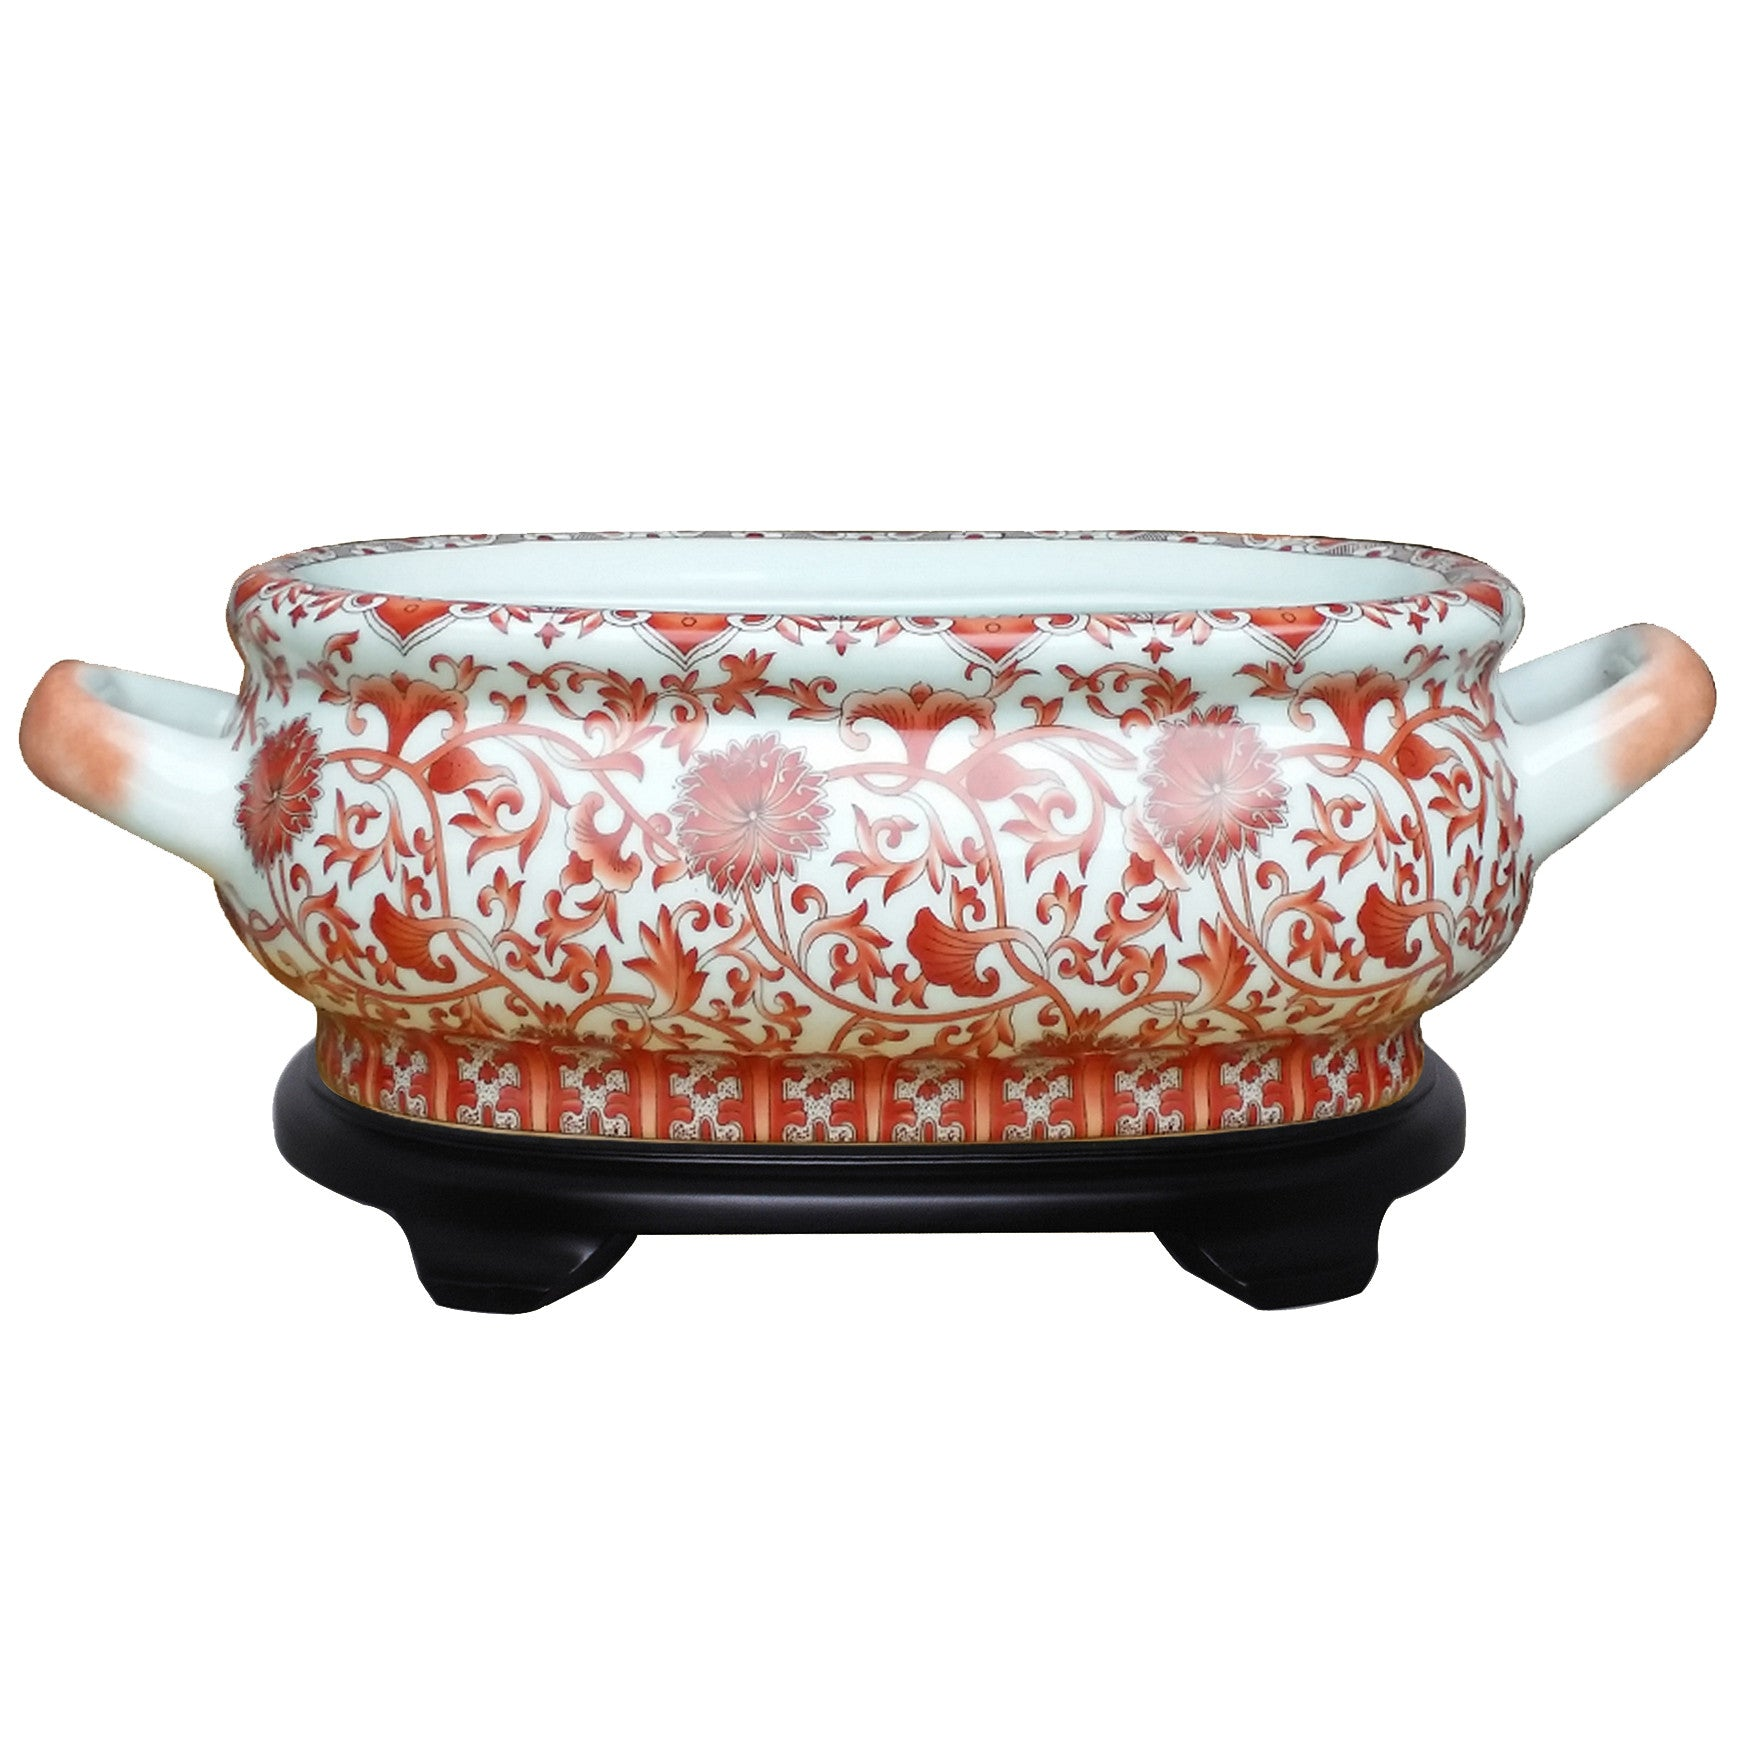 Coral Porcelain Footbath with Base